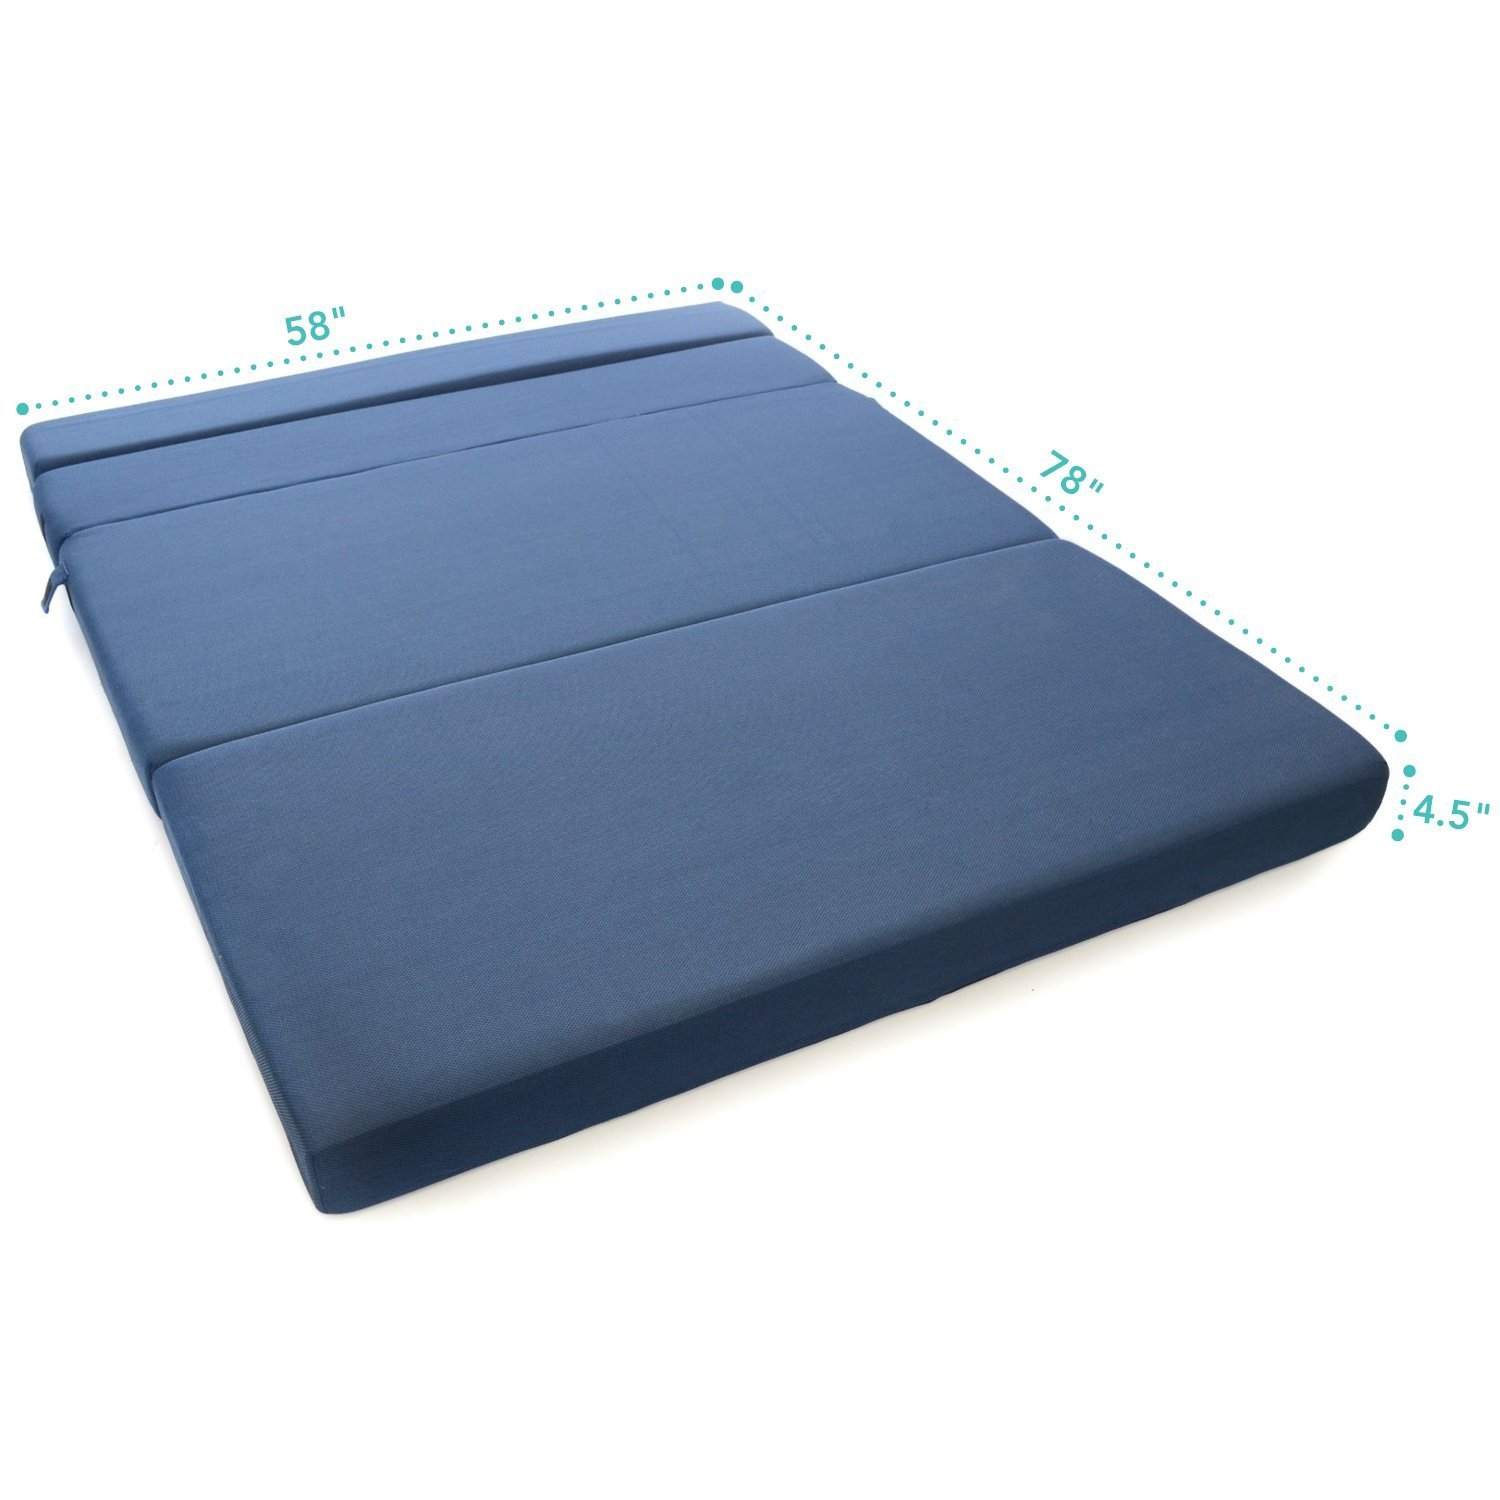 Tri fold foam folding mattress and sofa bed queen for Tri fold futon mattress cover